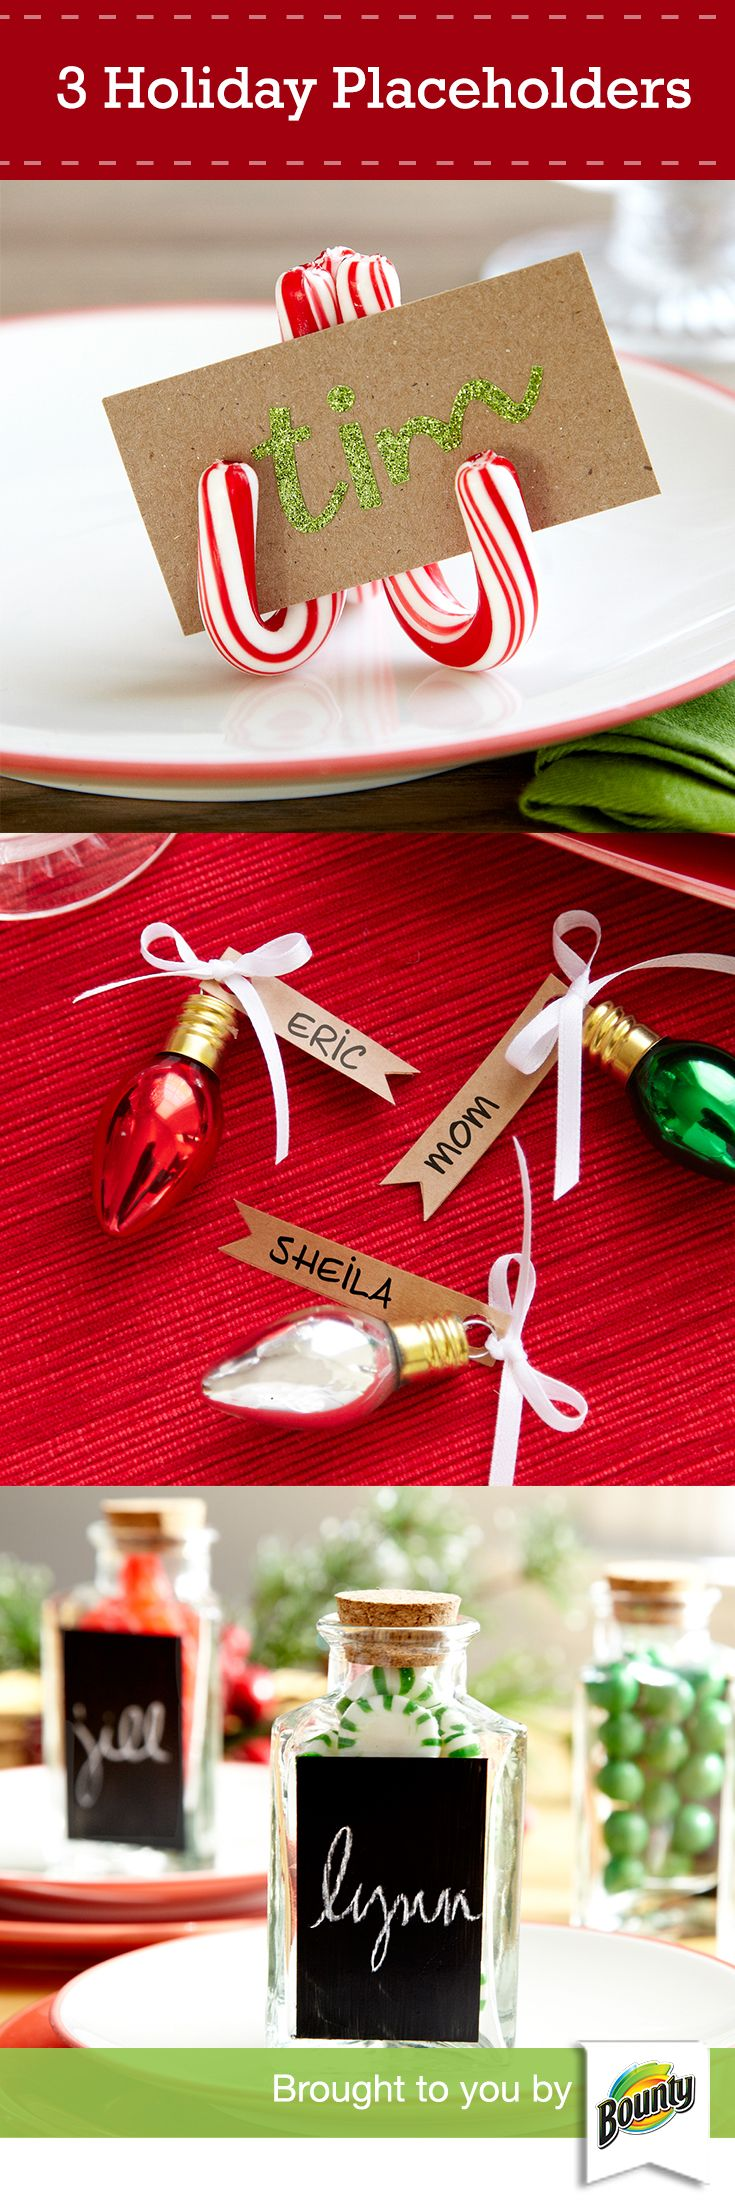 Try these 3 simple but thoughtful ideas to impress guests at your next dinner party. Create a cheerful holiday atmosphere with custom place settings using mini candy canes, personalized ornaments or chalkboard paint jars.